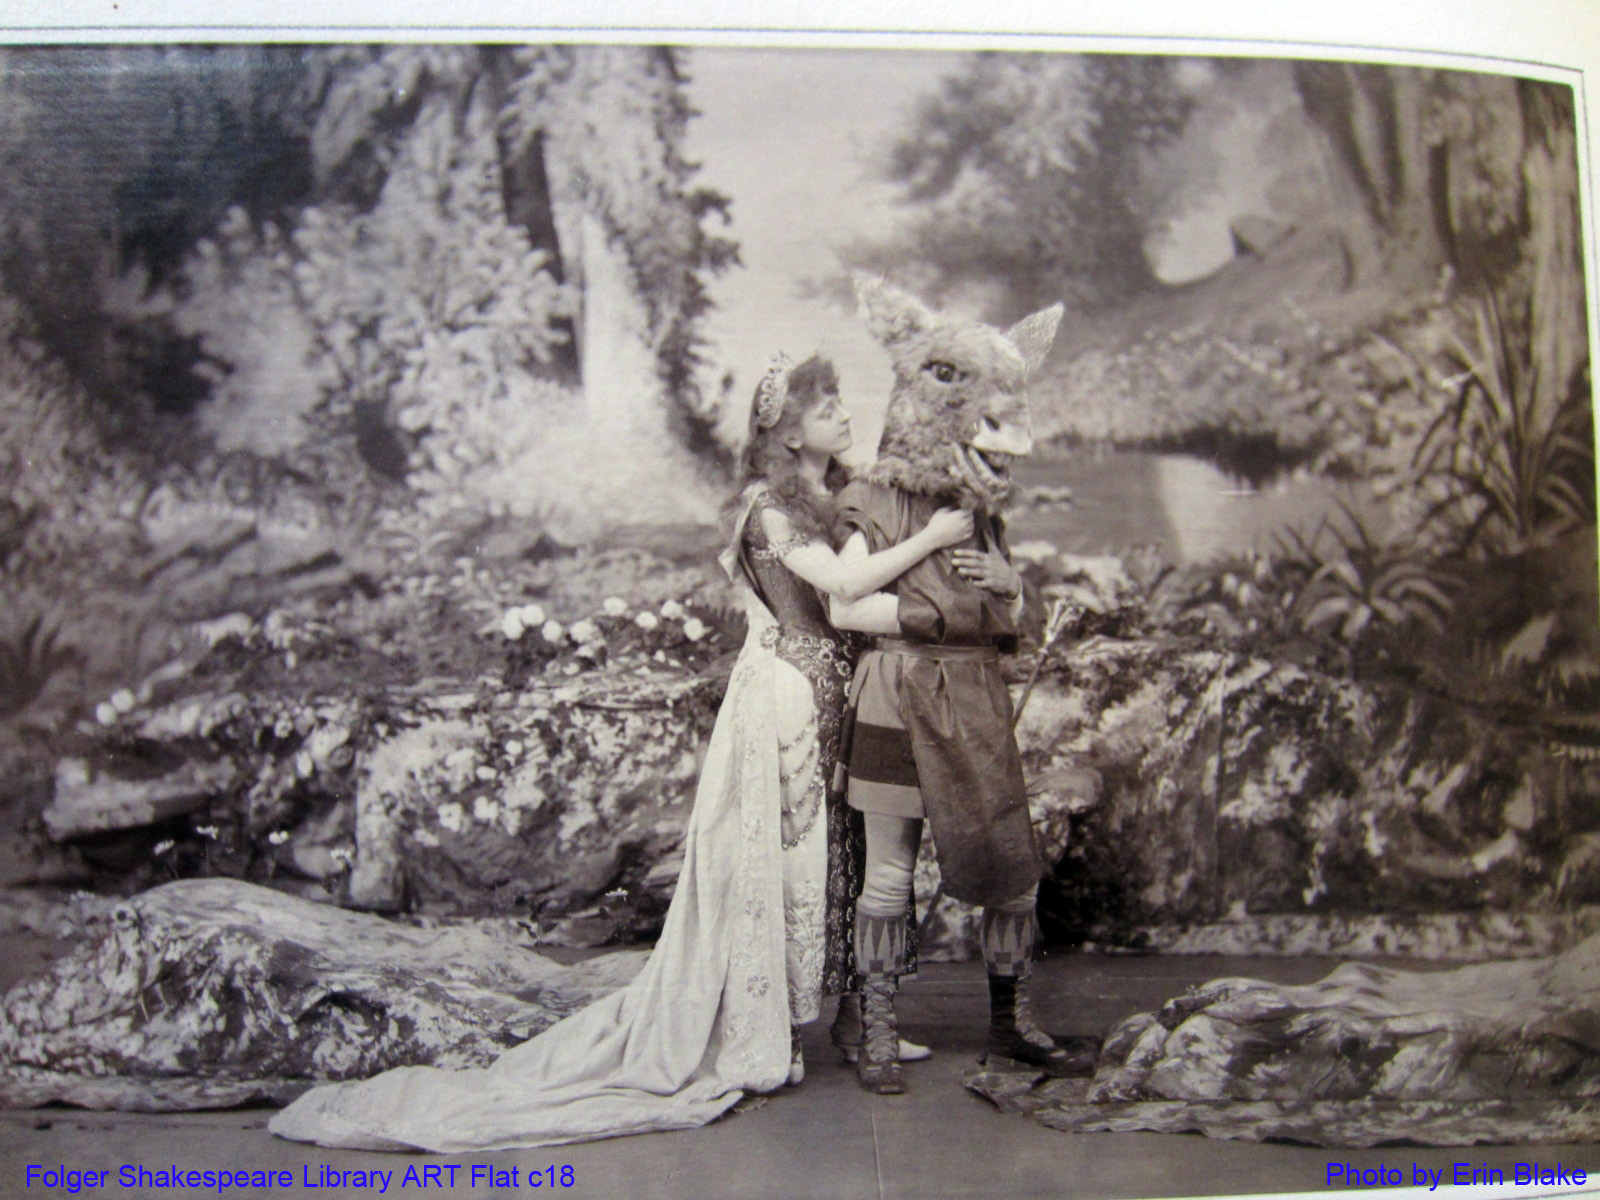 Miss Effie Shannon as Titania and Mr. James Lewis as Bottom in Augustin Daly's 1888 production of A Midsummer NIght's Dream